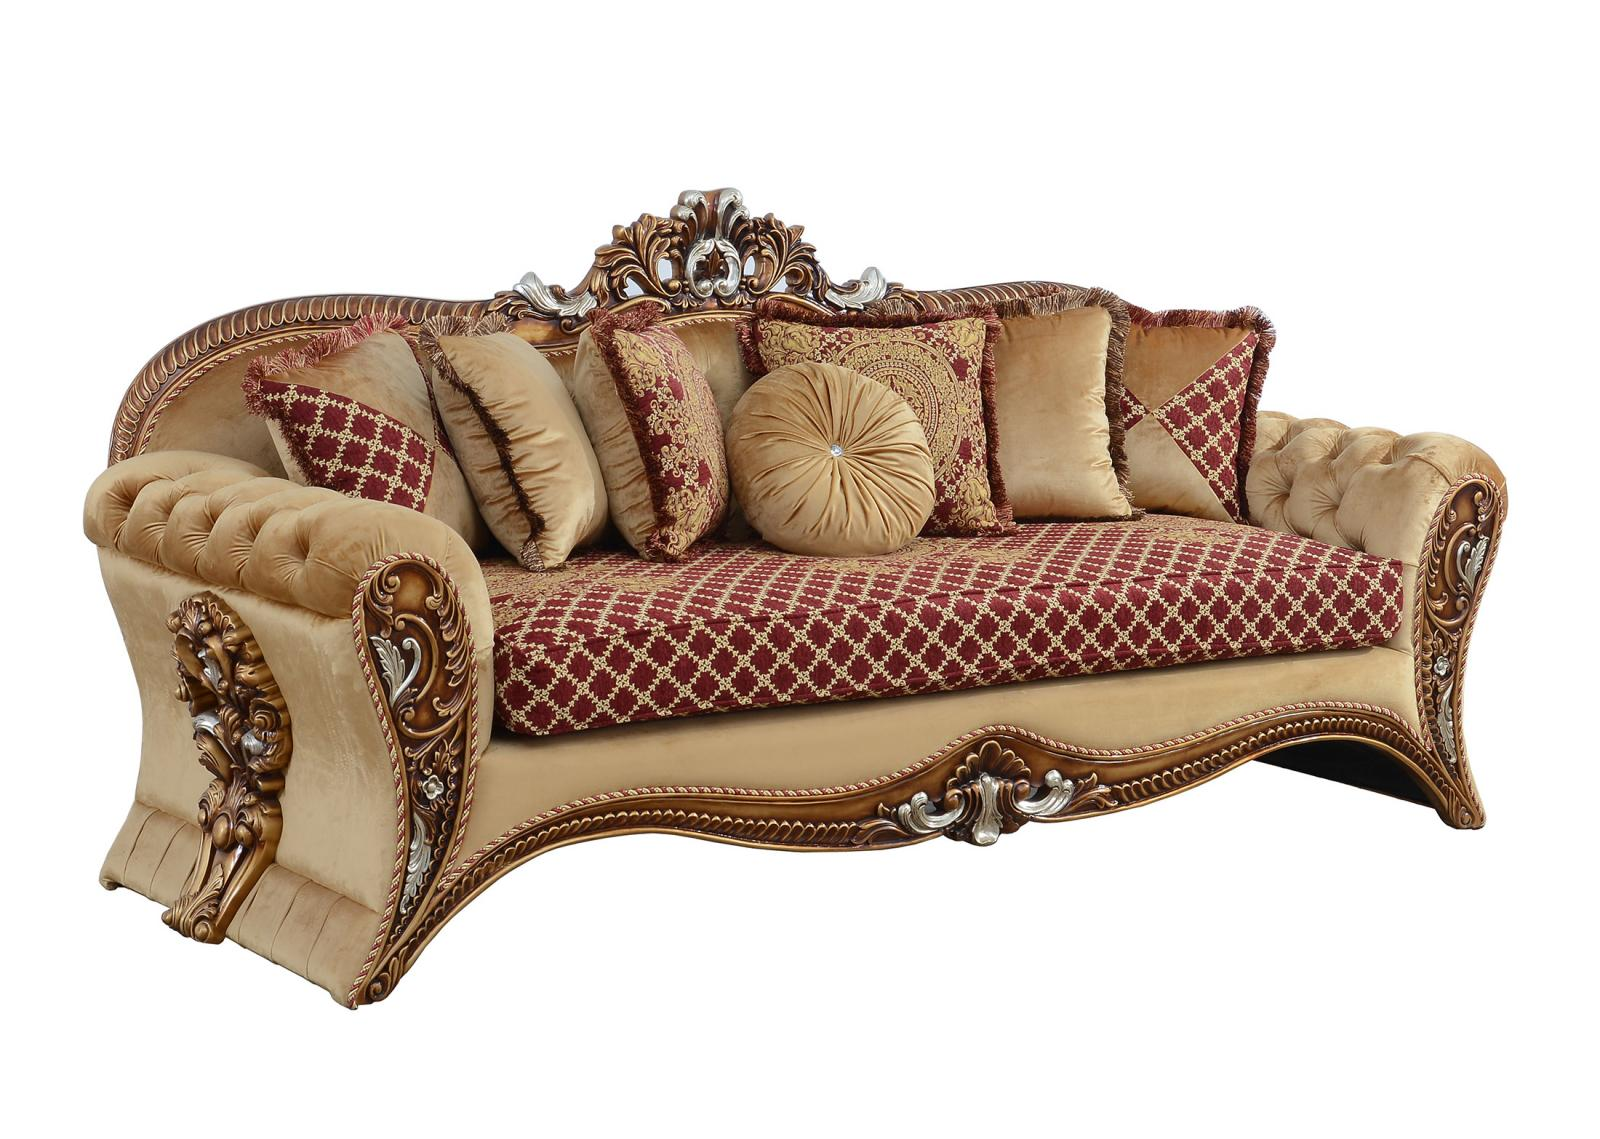 Classic  Traditional Gold   Red Wood  Solid Hardwood and Fabric Sofa EUROPEAN FURNITURE 42036-S